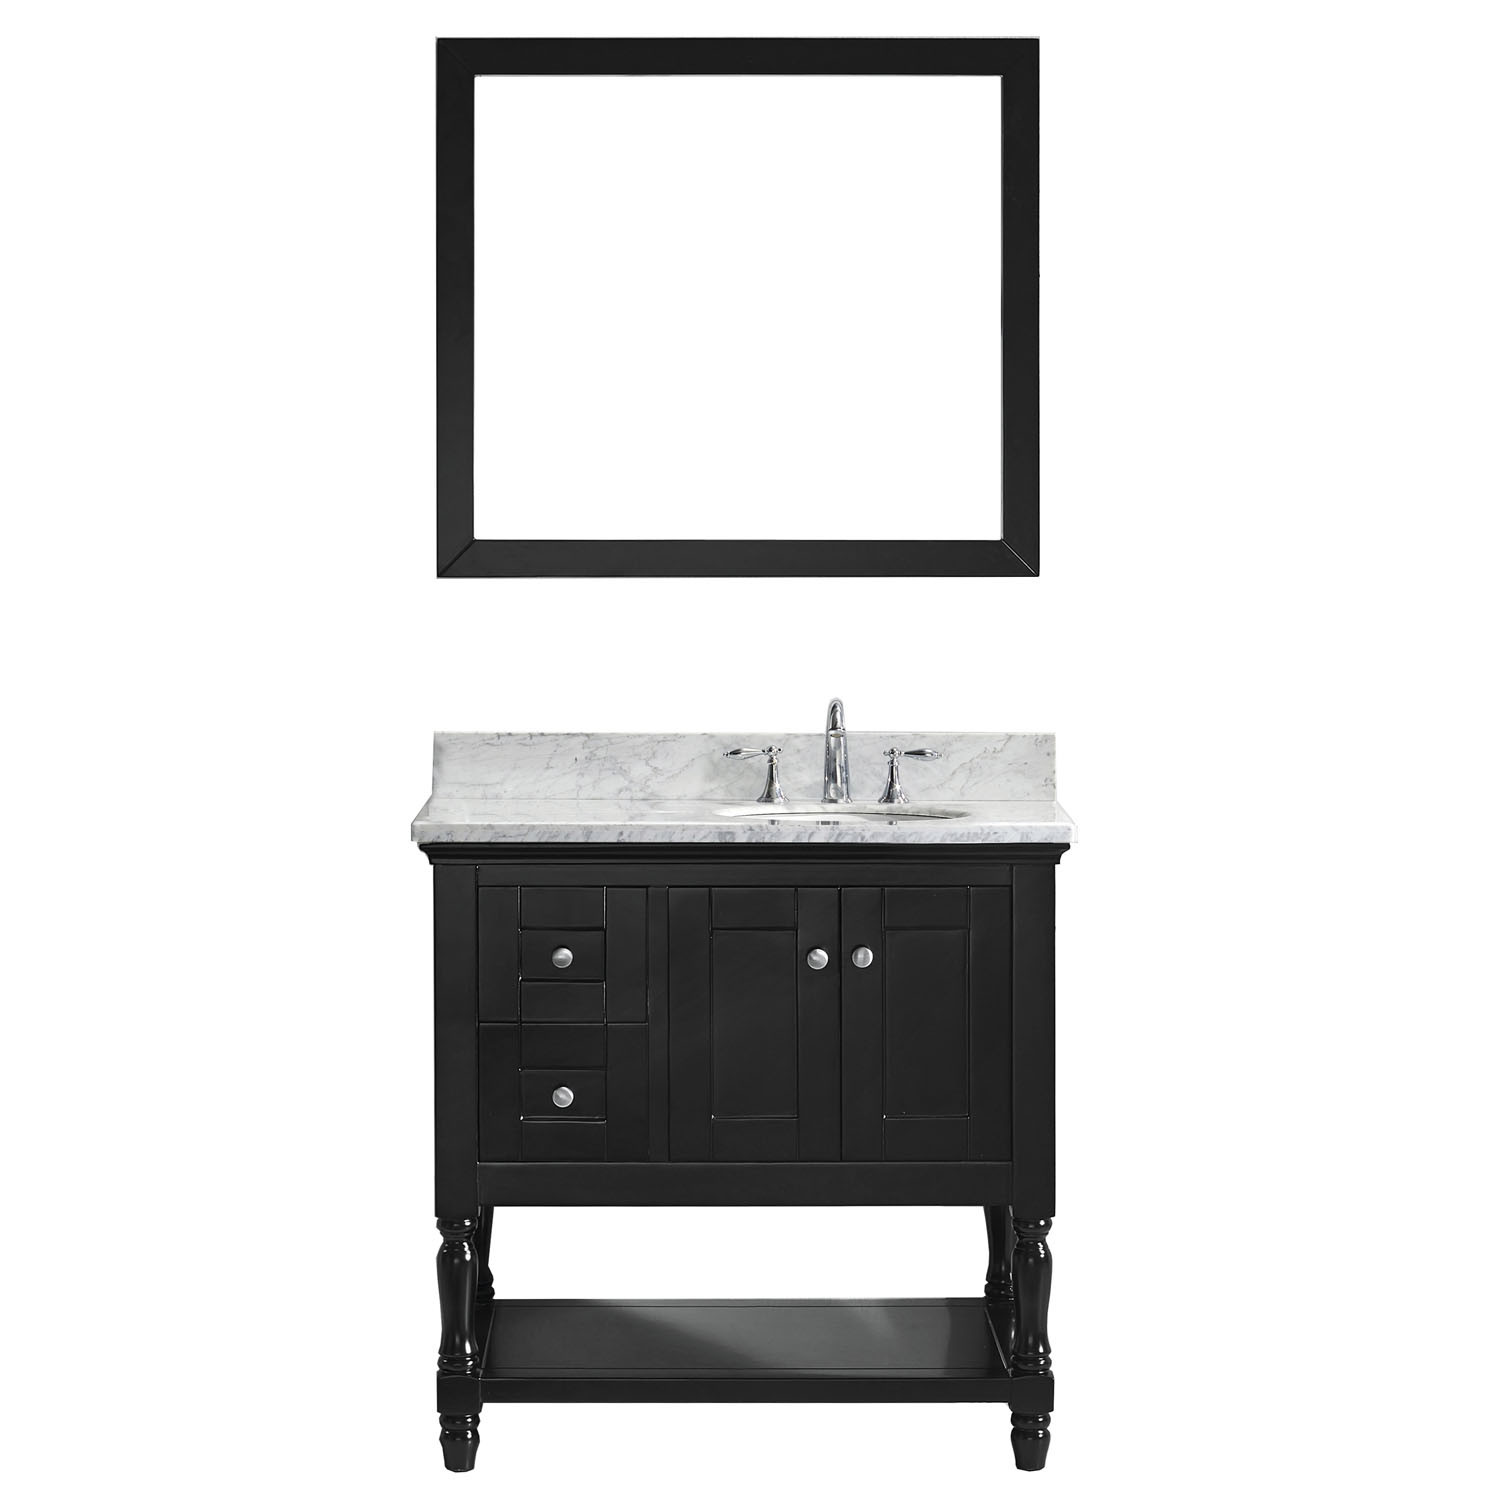 VIRTU MS-3136-WMRO-ES-002 Julianna 36 Inch Single Bathroom Vanity Set In Espresso